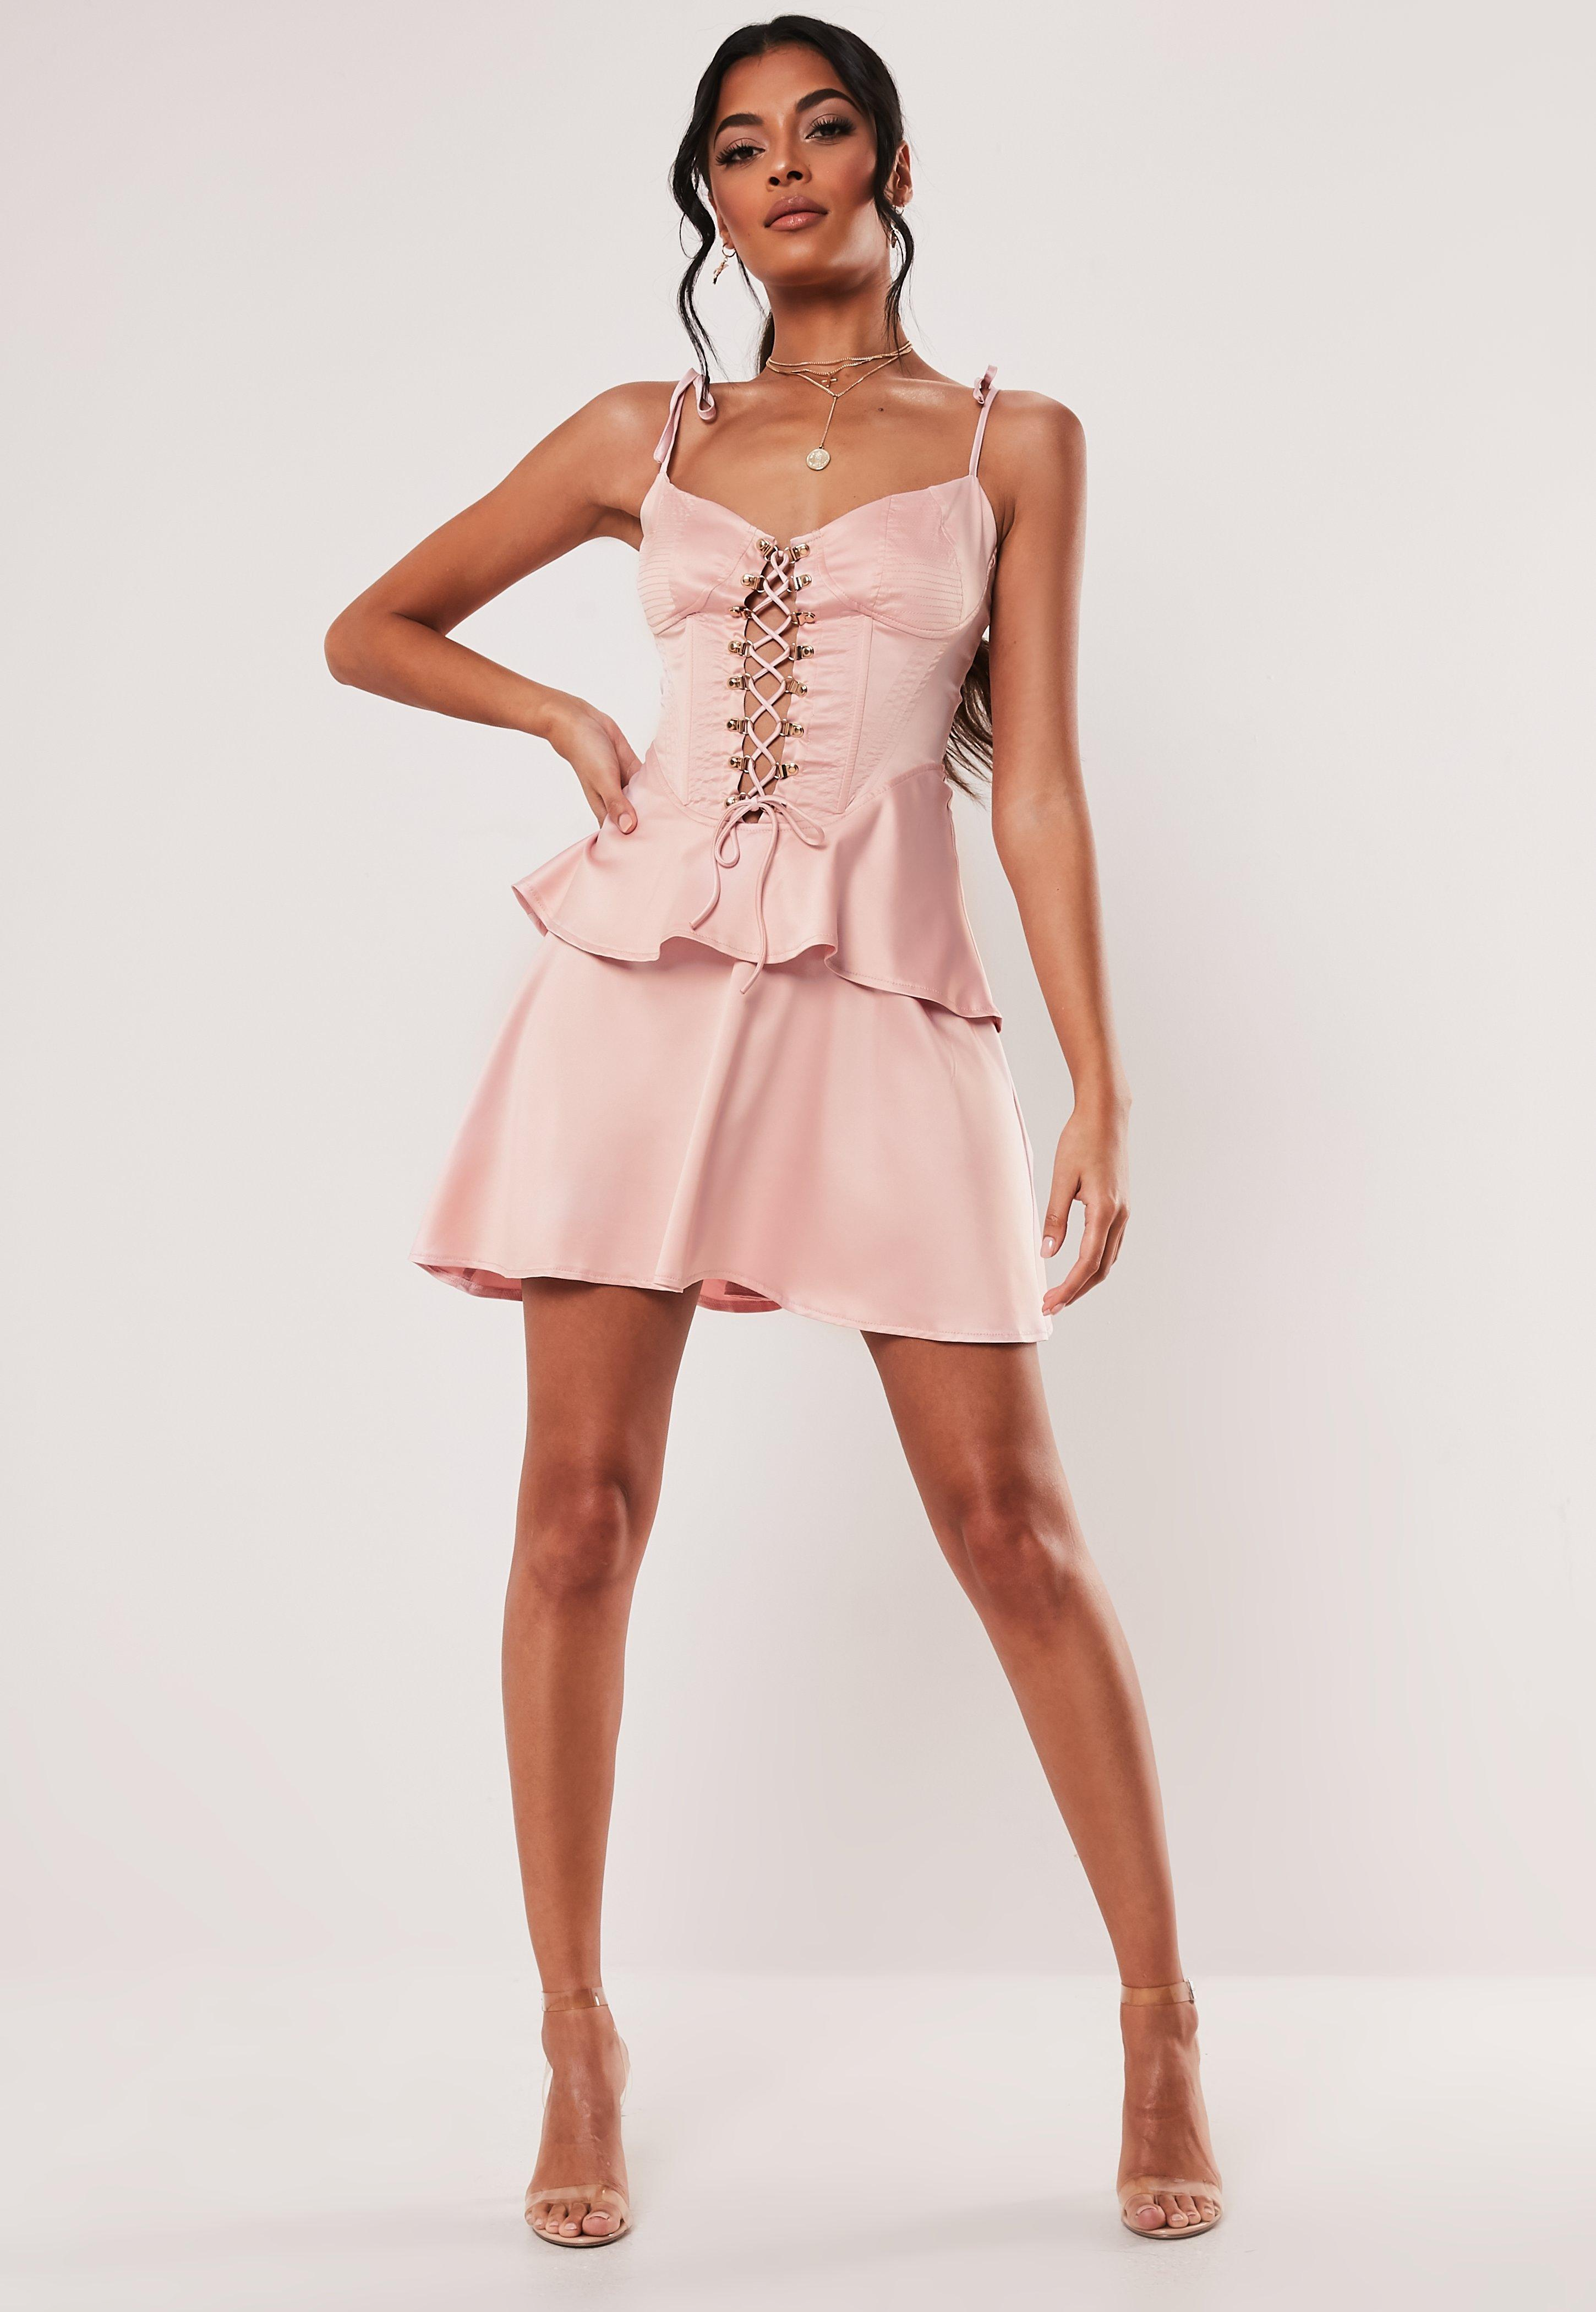 e94caec8144 Skater Dresses - Full Skirted Fit & Flare Dresses | Missguided